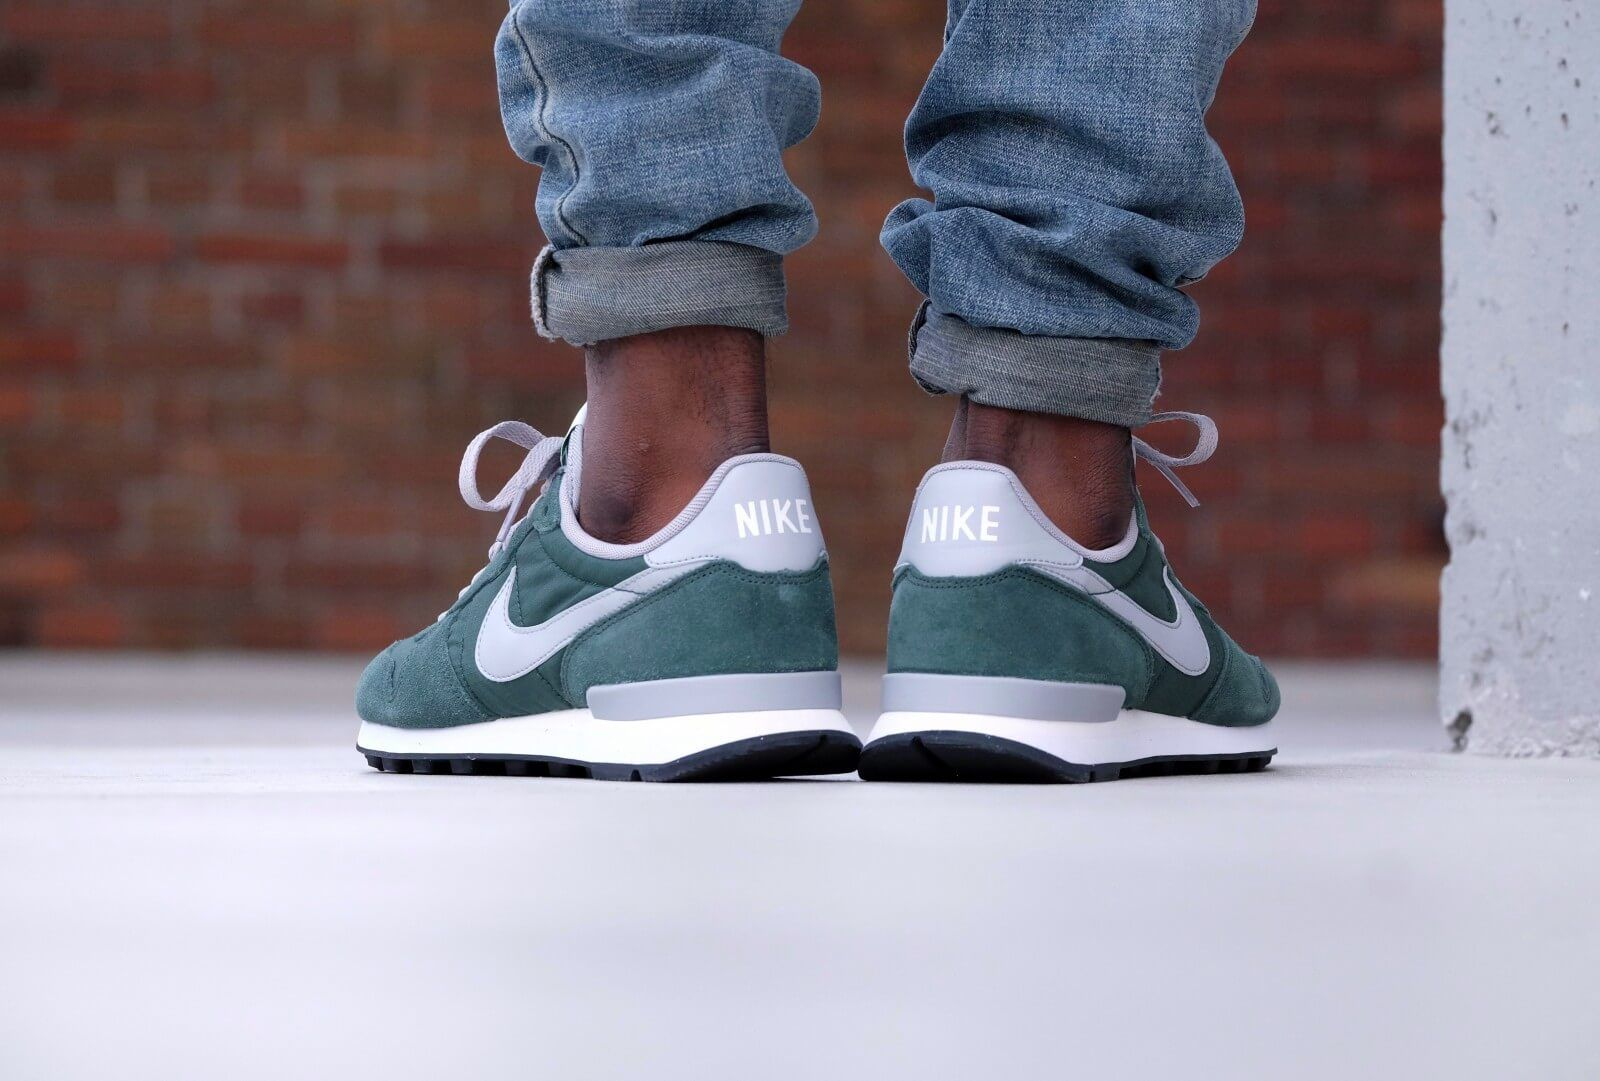 Nike Air Pegasus 83 Mens Trainers in Green at Scorpion Shoes.